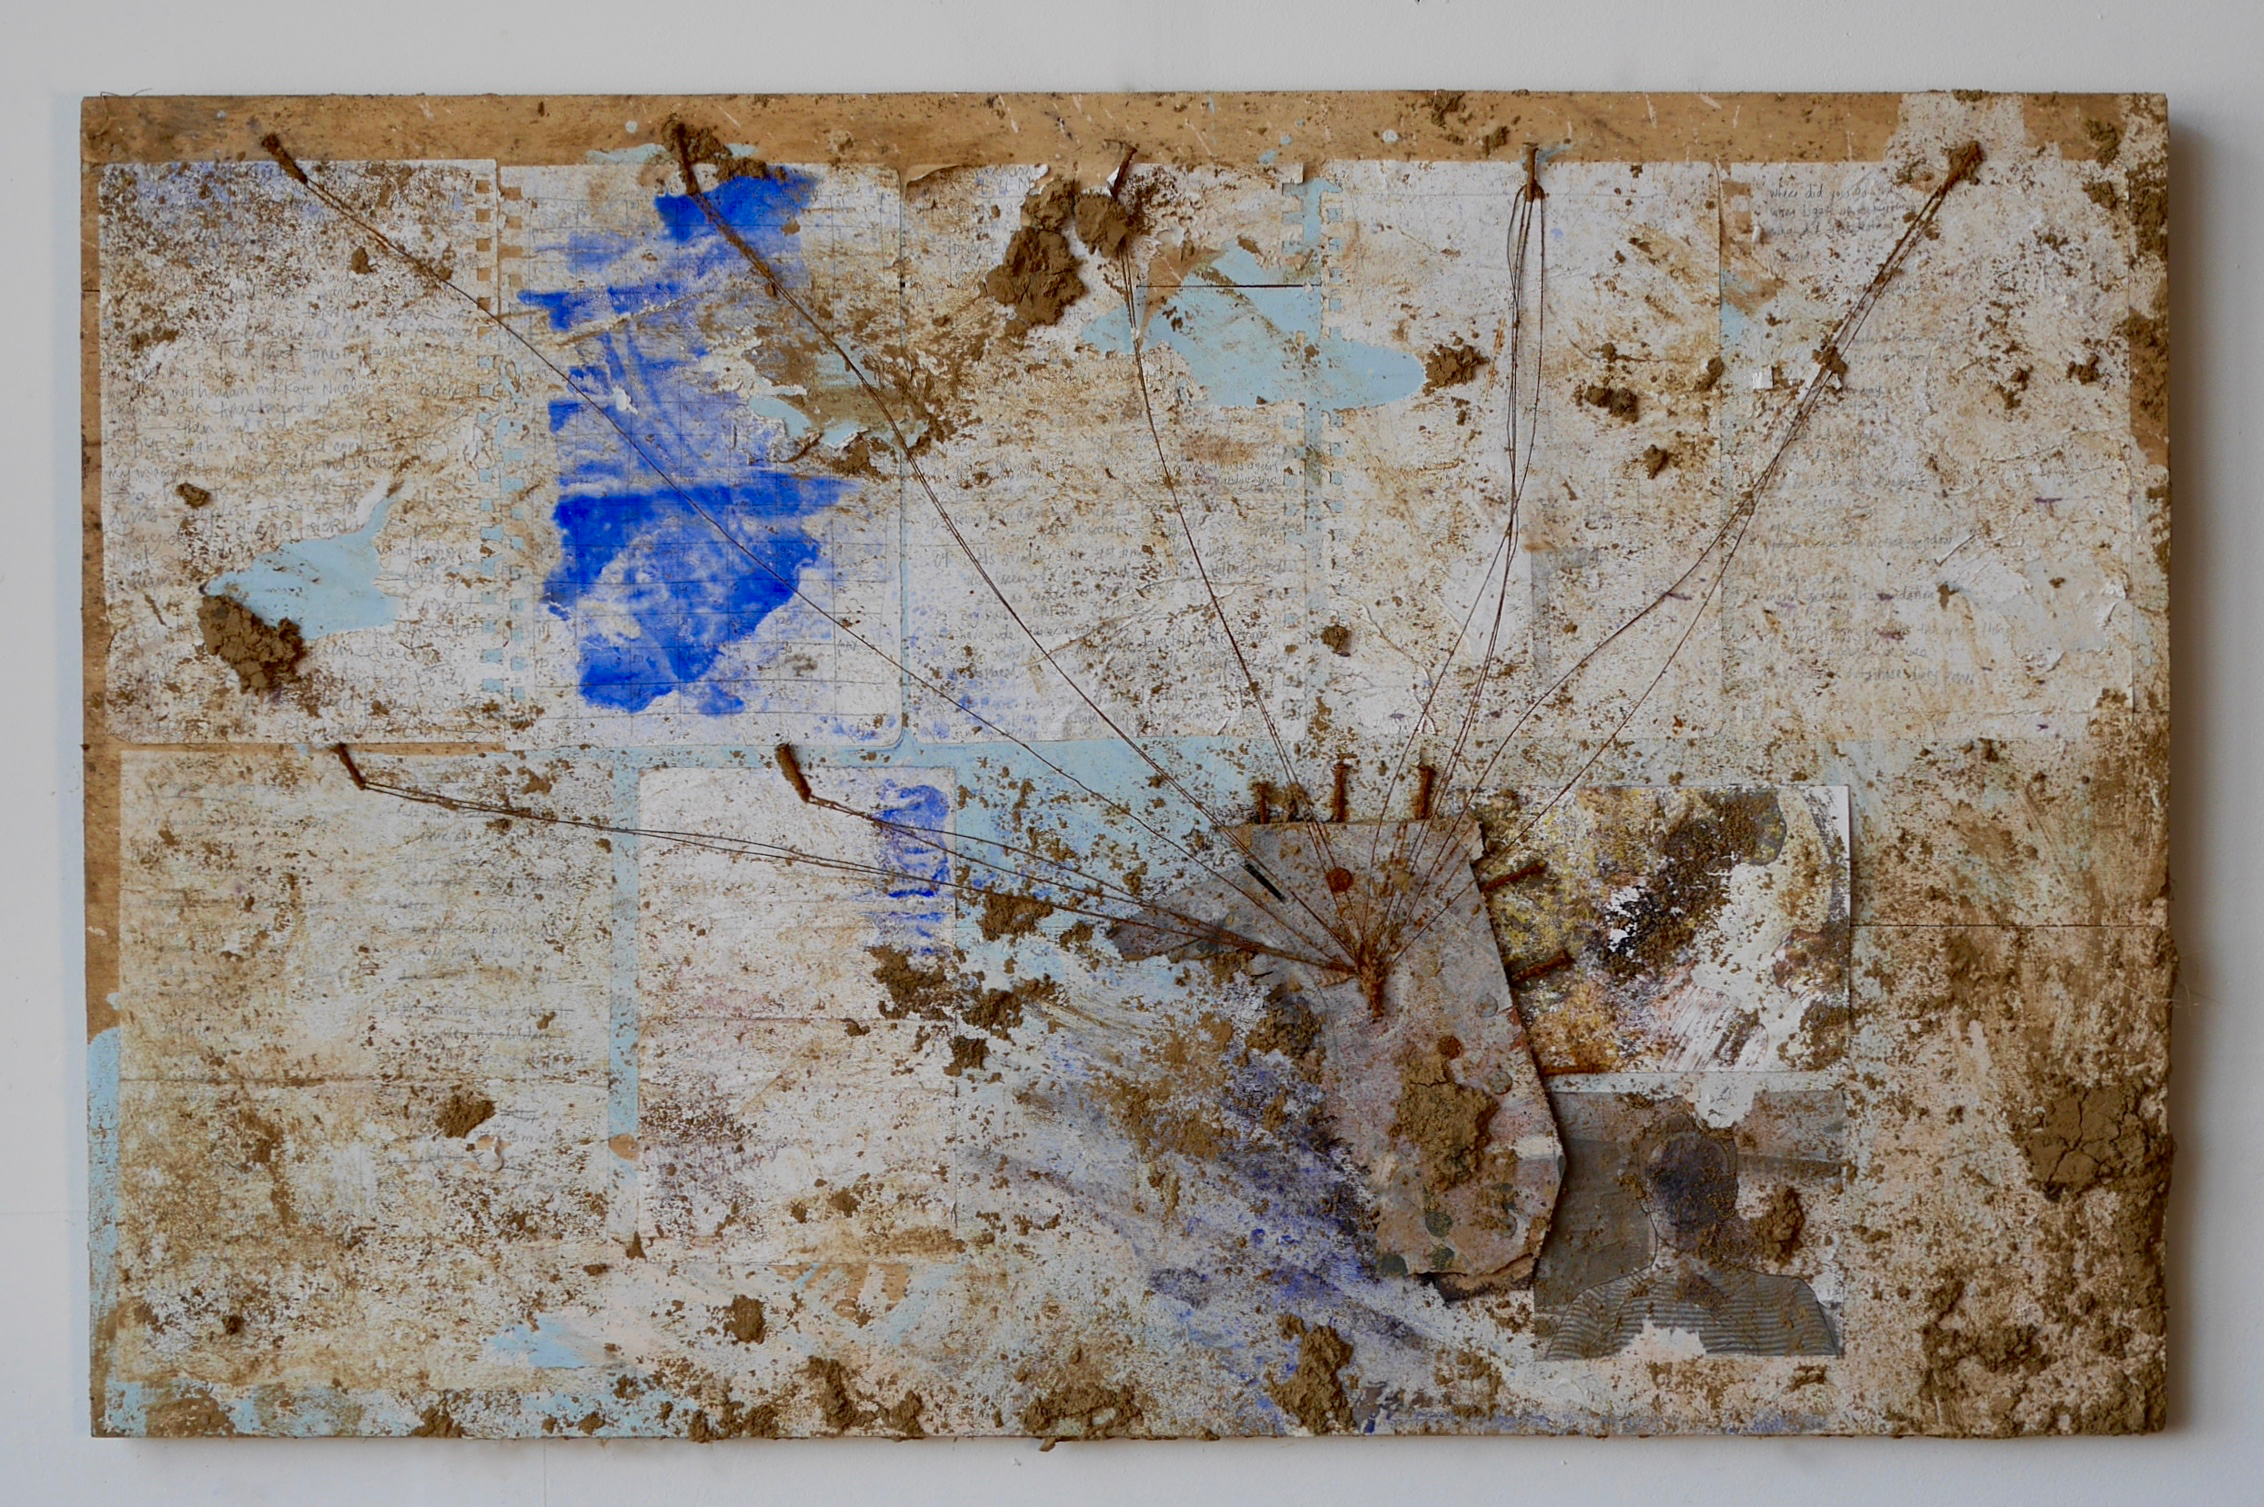 """Number 7 - Evidence  24"""" x 32""""  Journal entries, self-portrait 2004 on photographic paper, self-portrait 2008 on copy paper, white-out, nails, wood, acrylic, milk, vinegar, salt, ink, dye, white flour, steel wire, staples, rust, dirt, mold on wood  (2015)"""